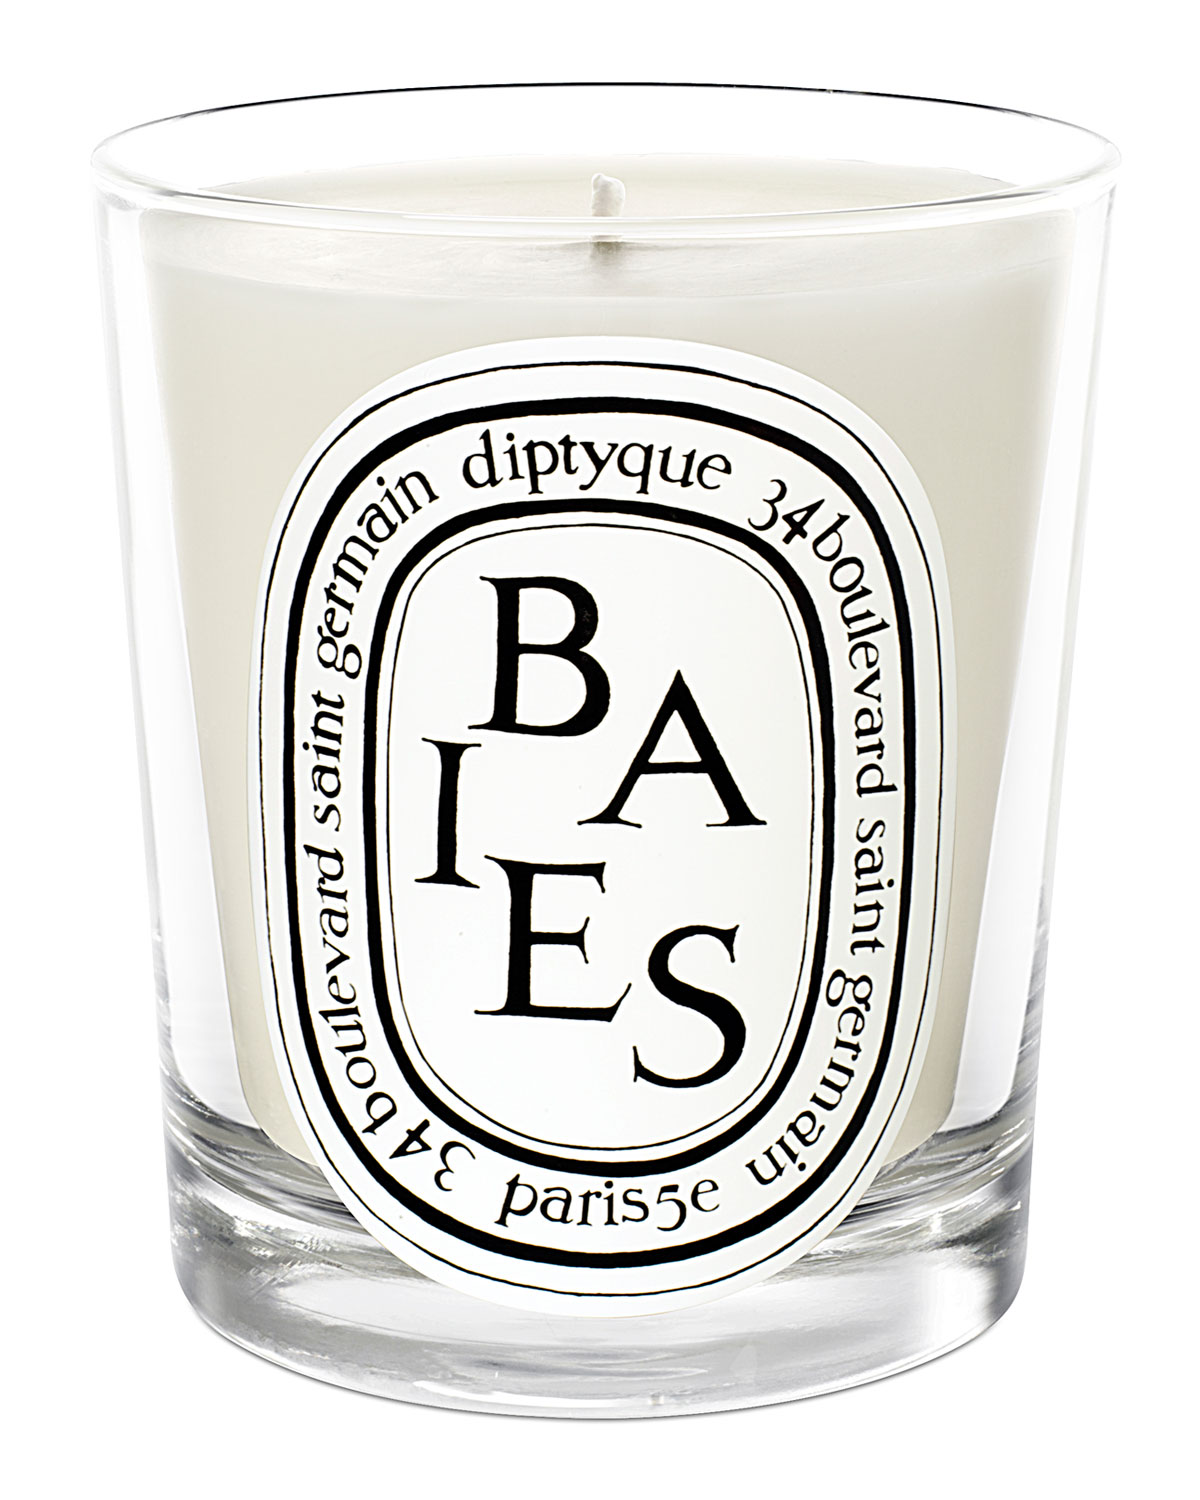 Diptyque 6.5 oz. Baies Scented Candle